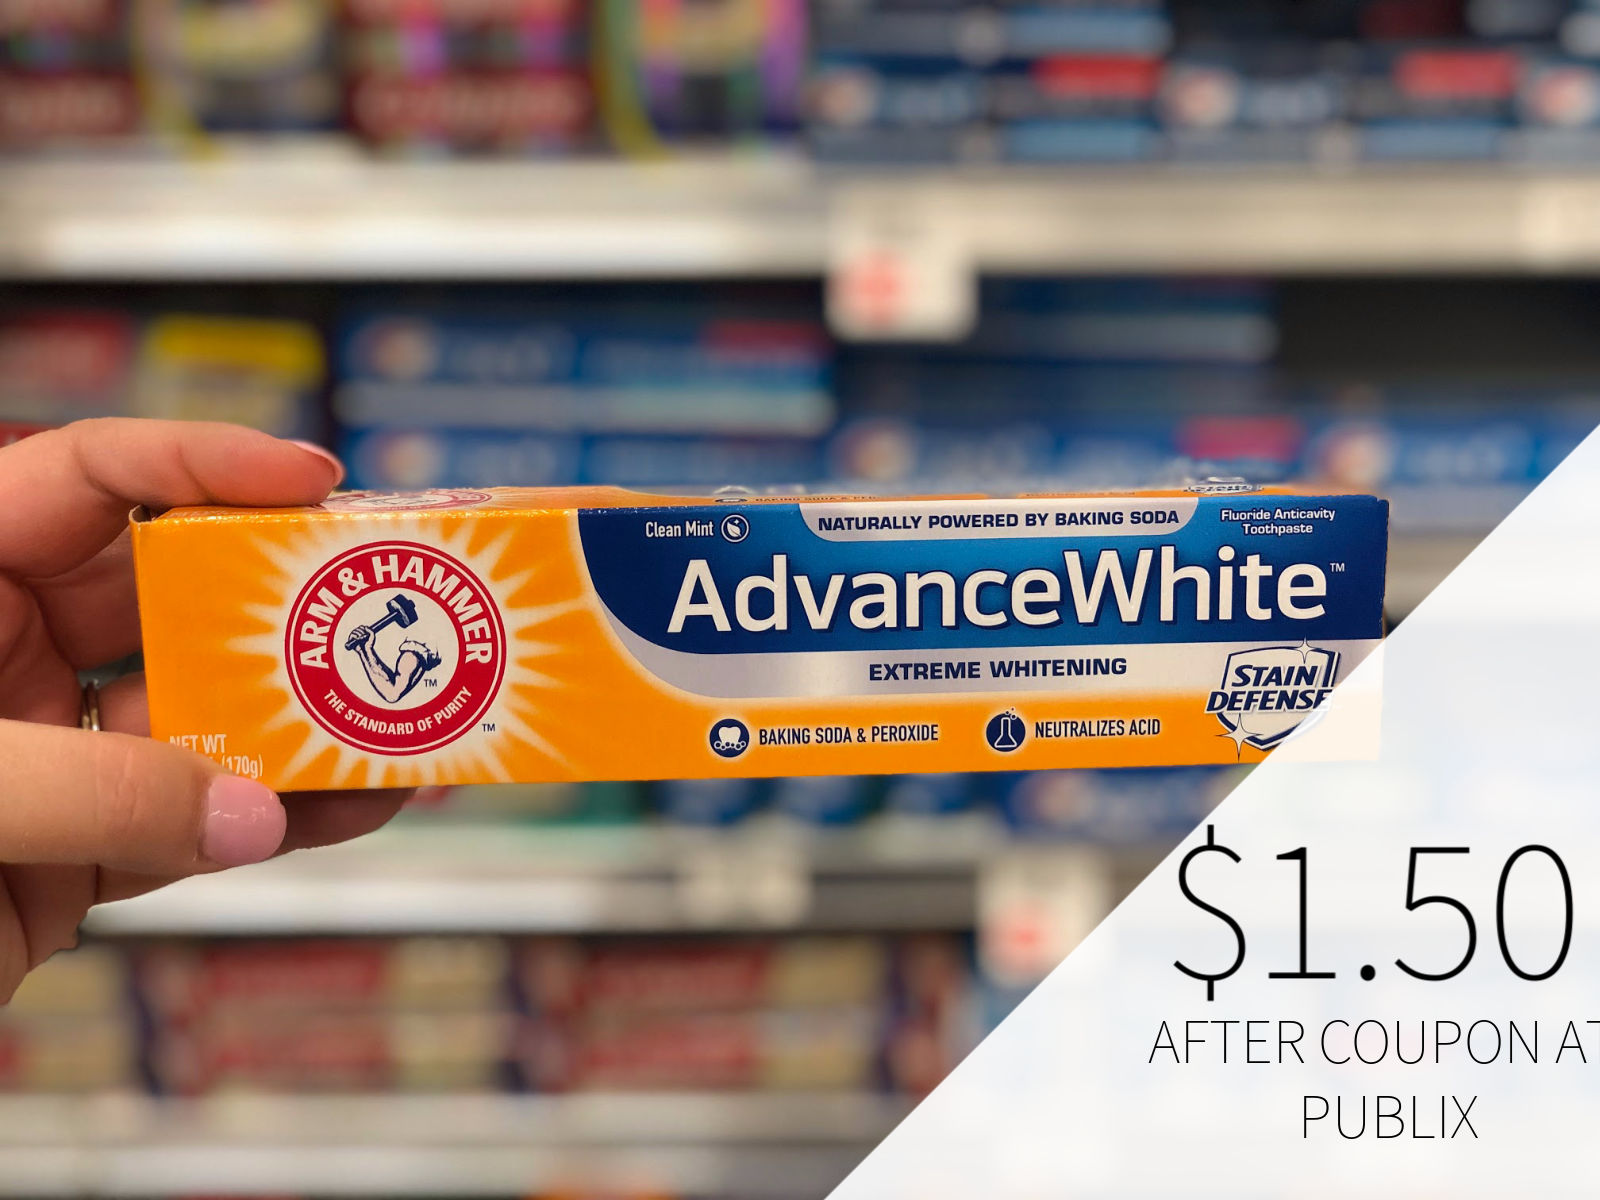 New Arm & Hammer Toothpaste Coupon For The Upcoming Publix Sale on I Heart Publix